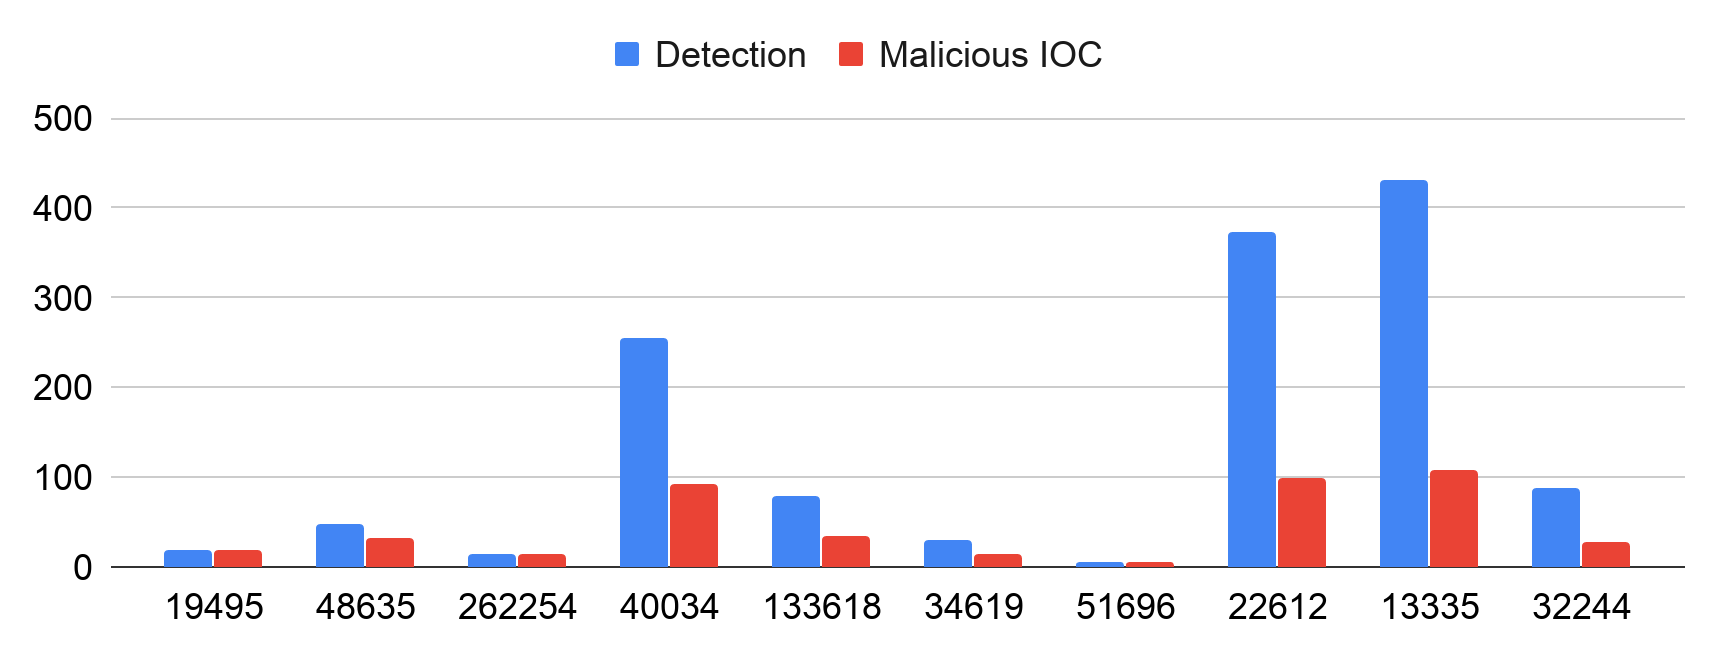 This graph shows the top 10 autonomous systems most abused by cybersquatting in December 2019, this time in terms of squatting detected (blue bars) and malicious IOC (red bars)